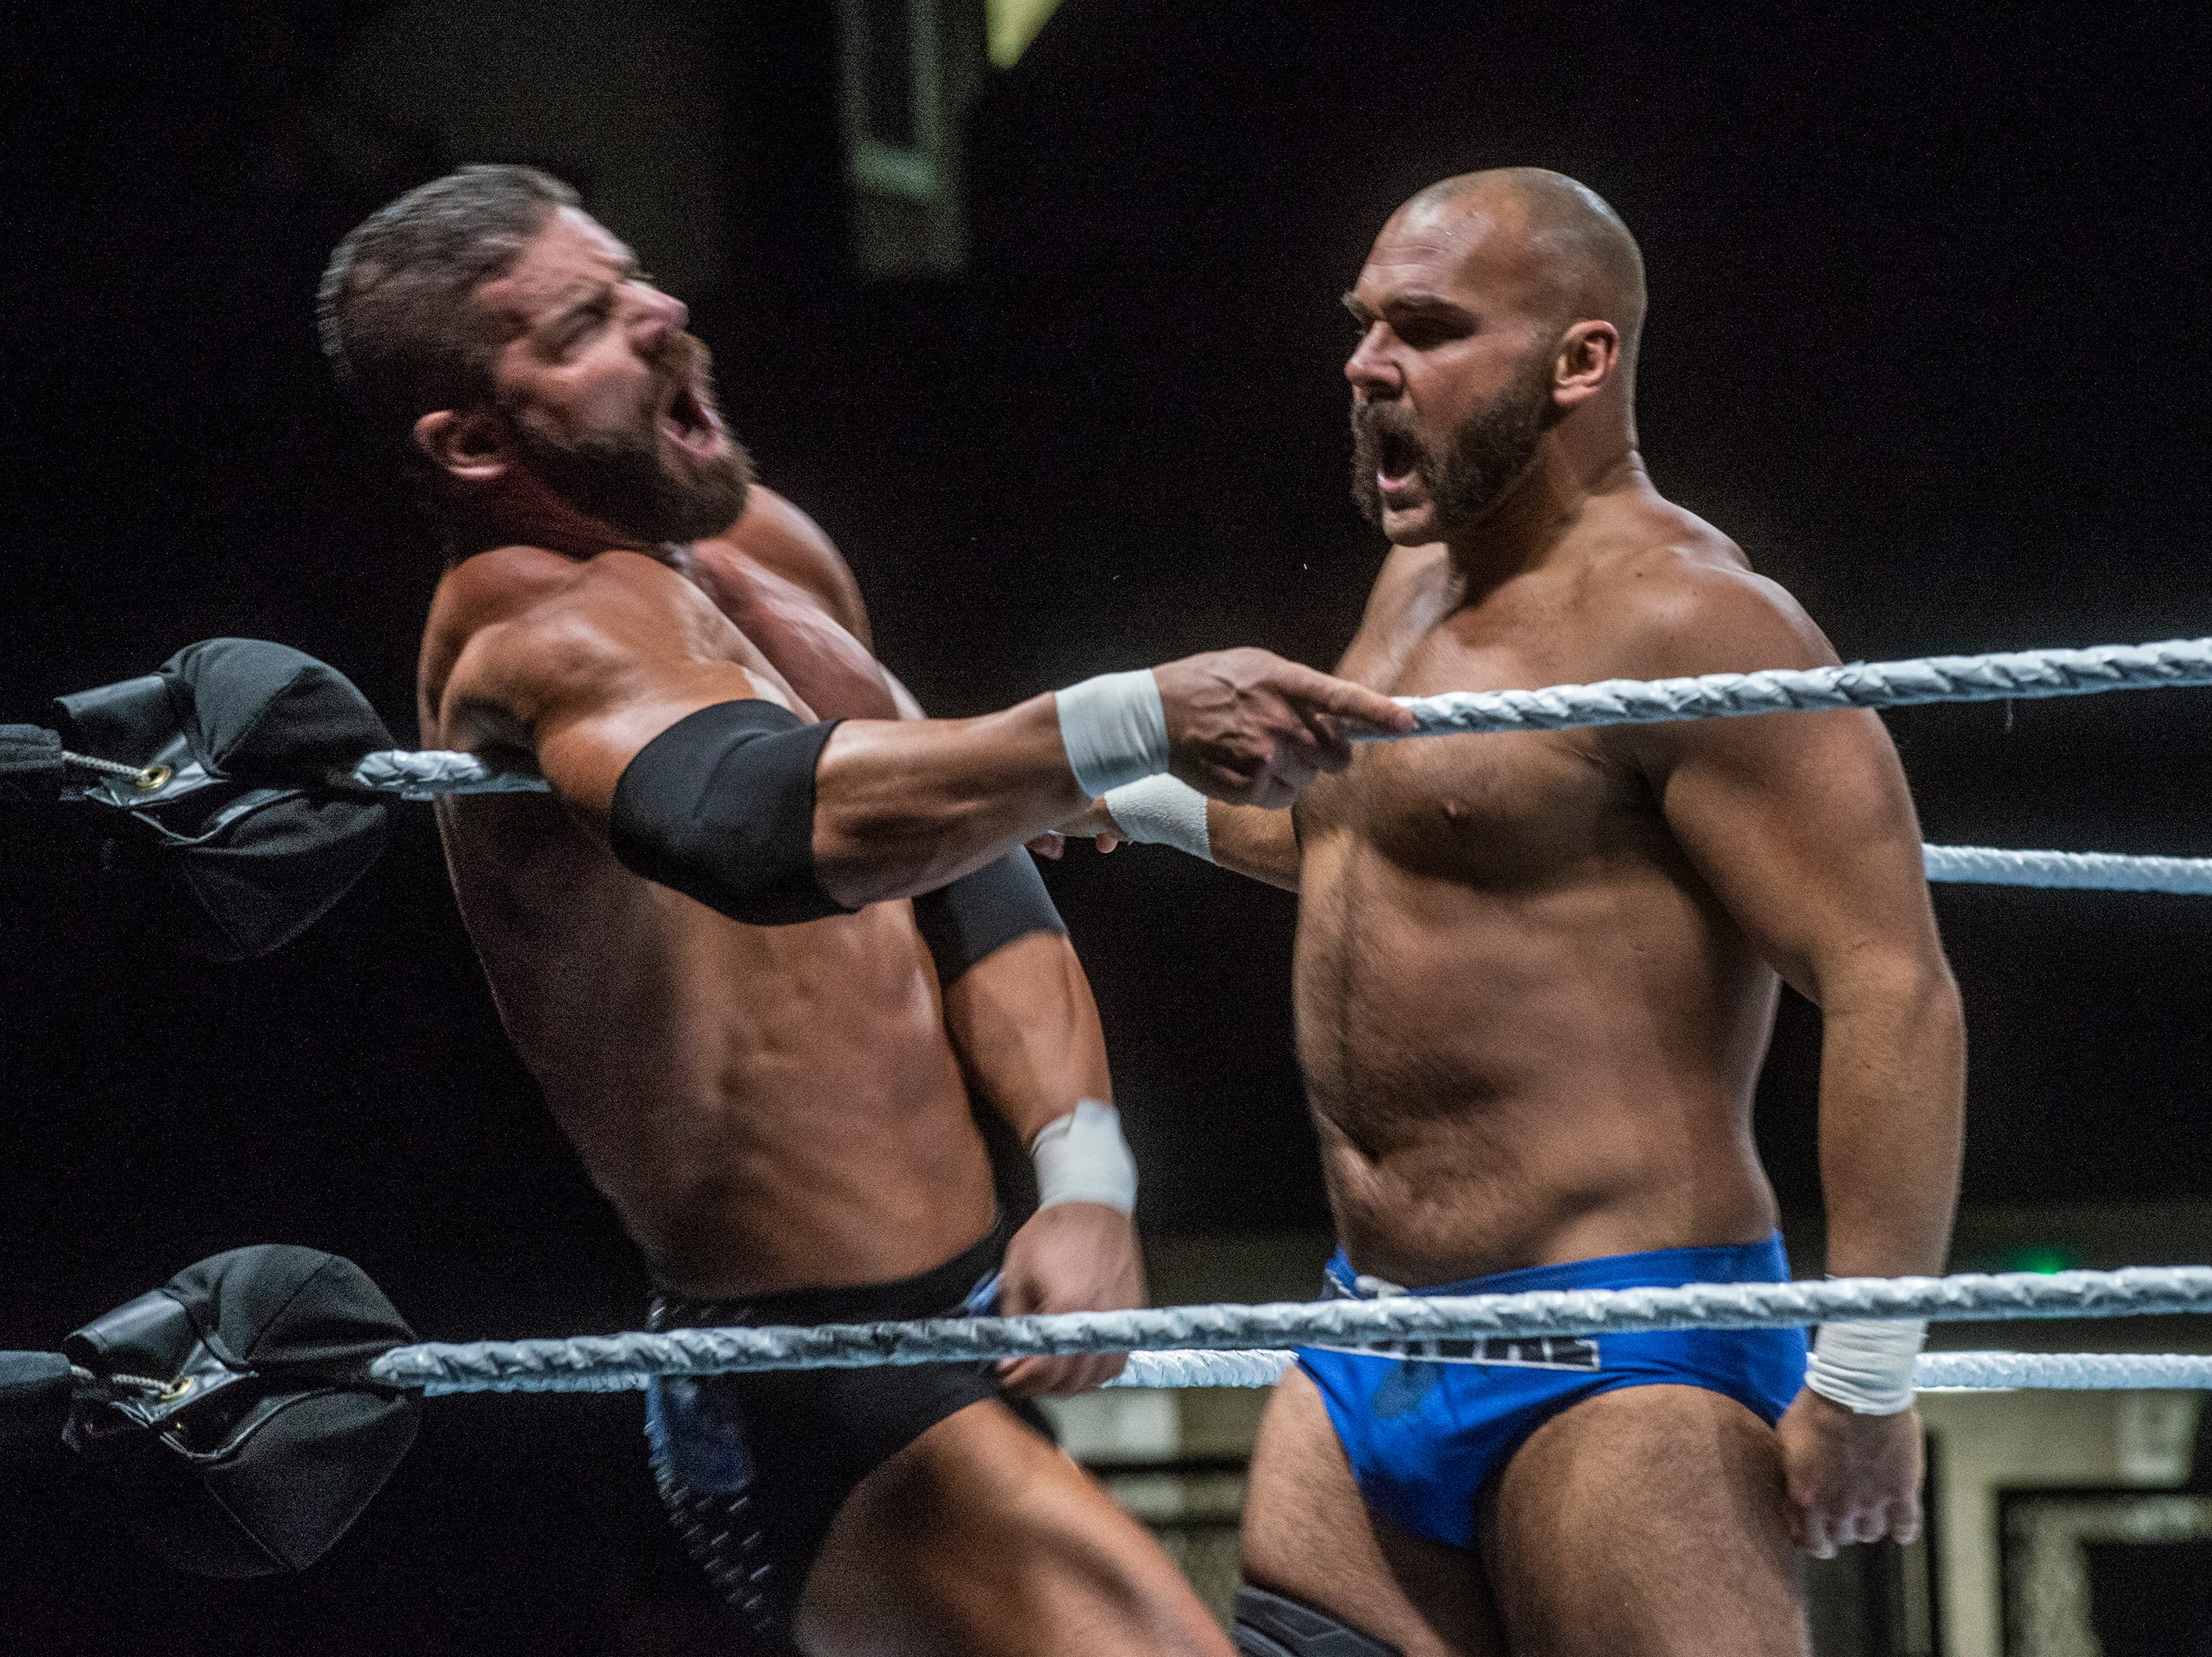 Bobby Roode and Chad Gable vs. Raw Tag Team Champions The Revival - Dash Wilder and Scott Dawson - in a tag team championship match. WWE Live Road to Wrestlemania came to Garrett Coliseum in Montgomery on Sunday, Feb. 24, 2019.